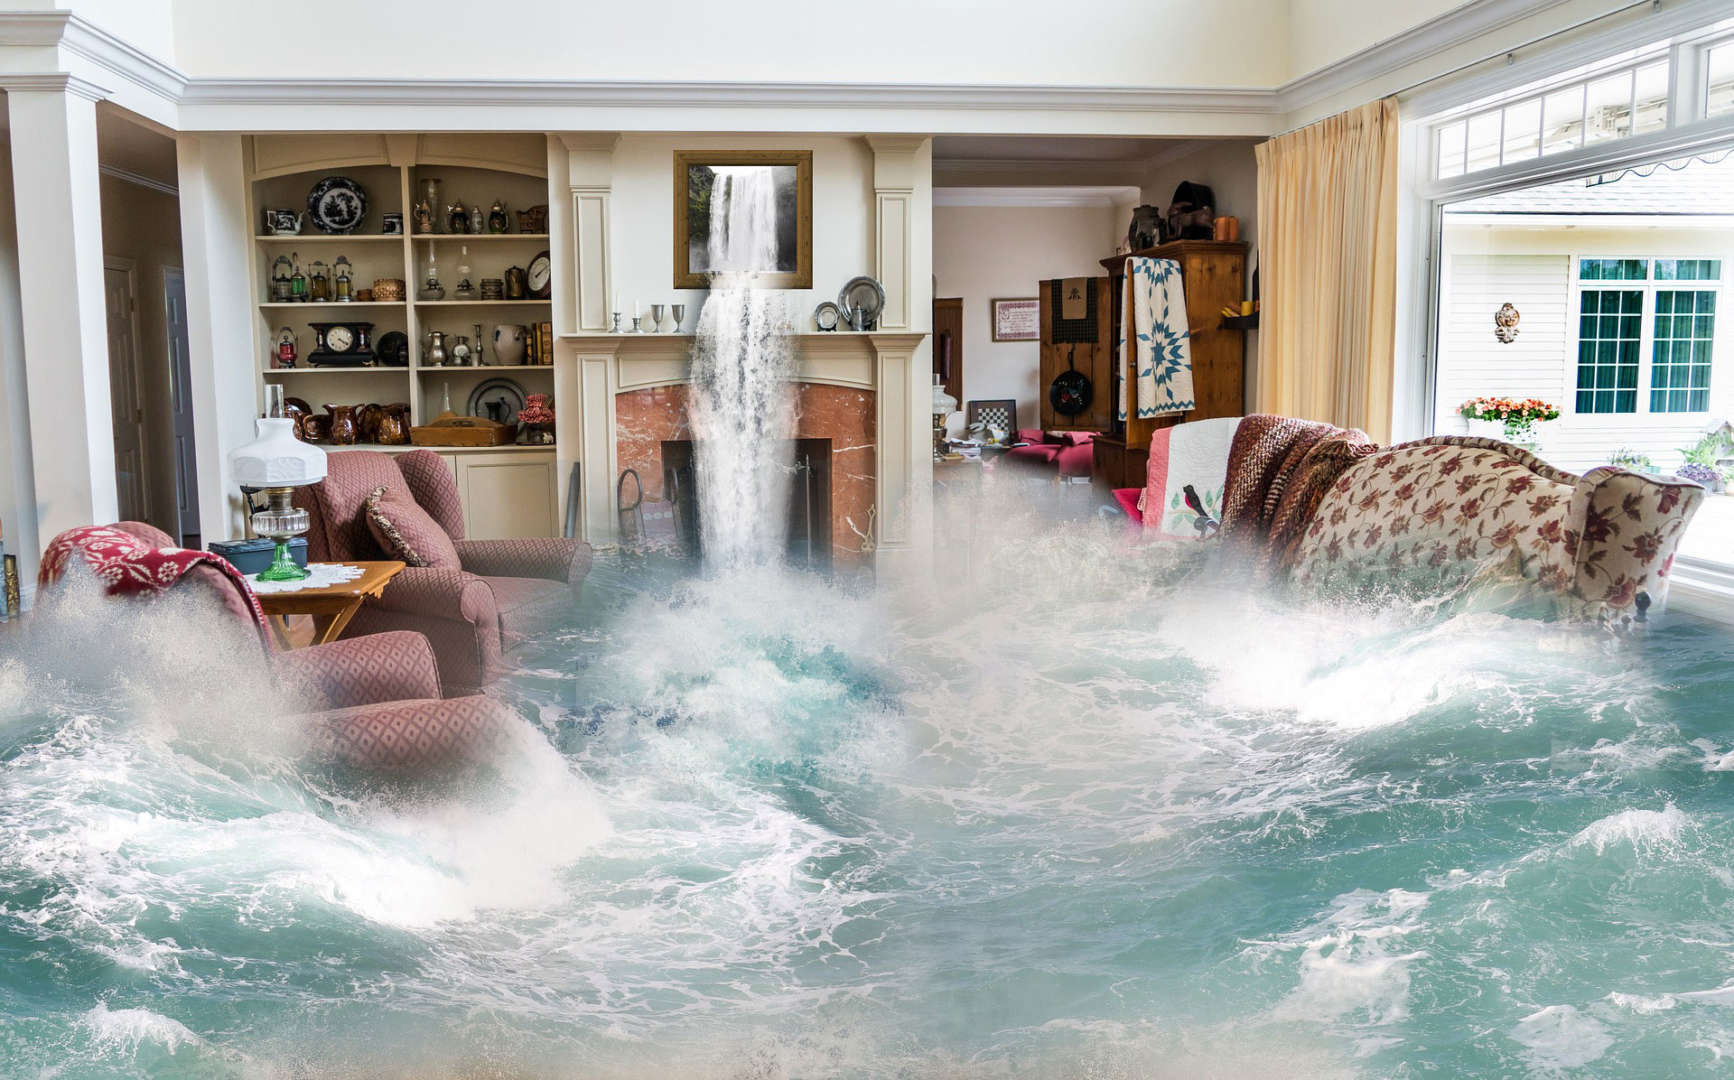 Love that dirty water? Not when it's in your home | The Dowd